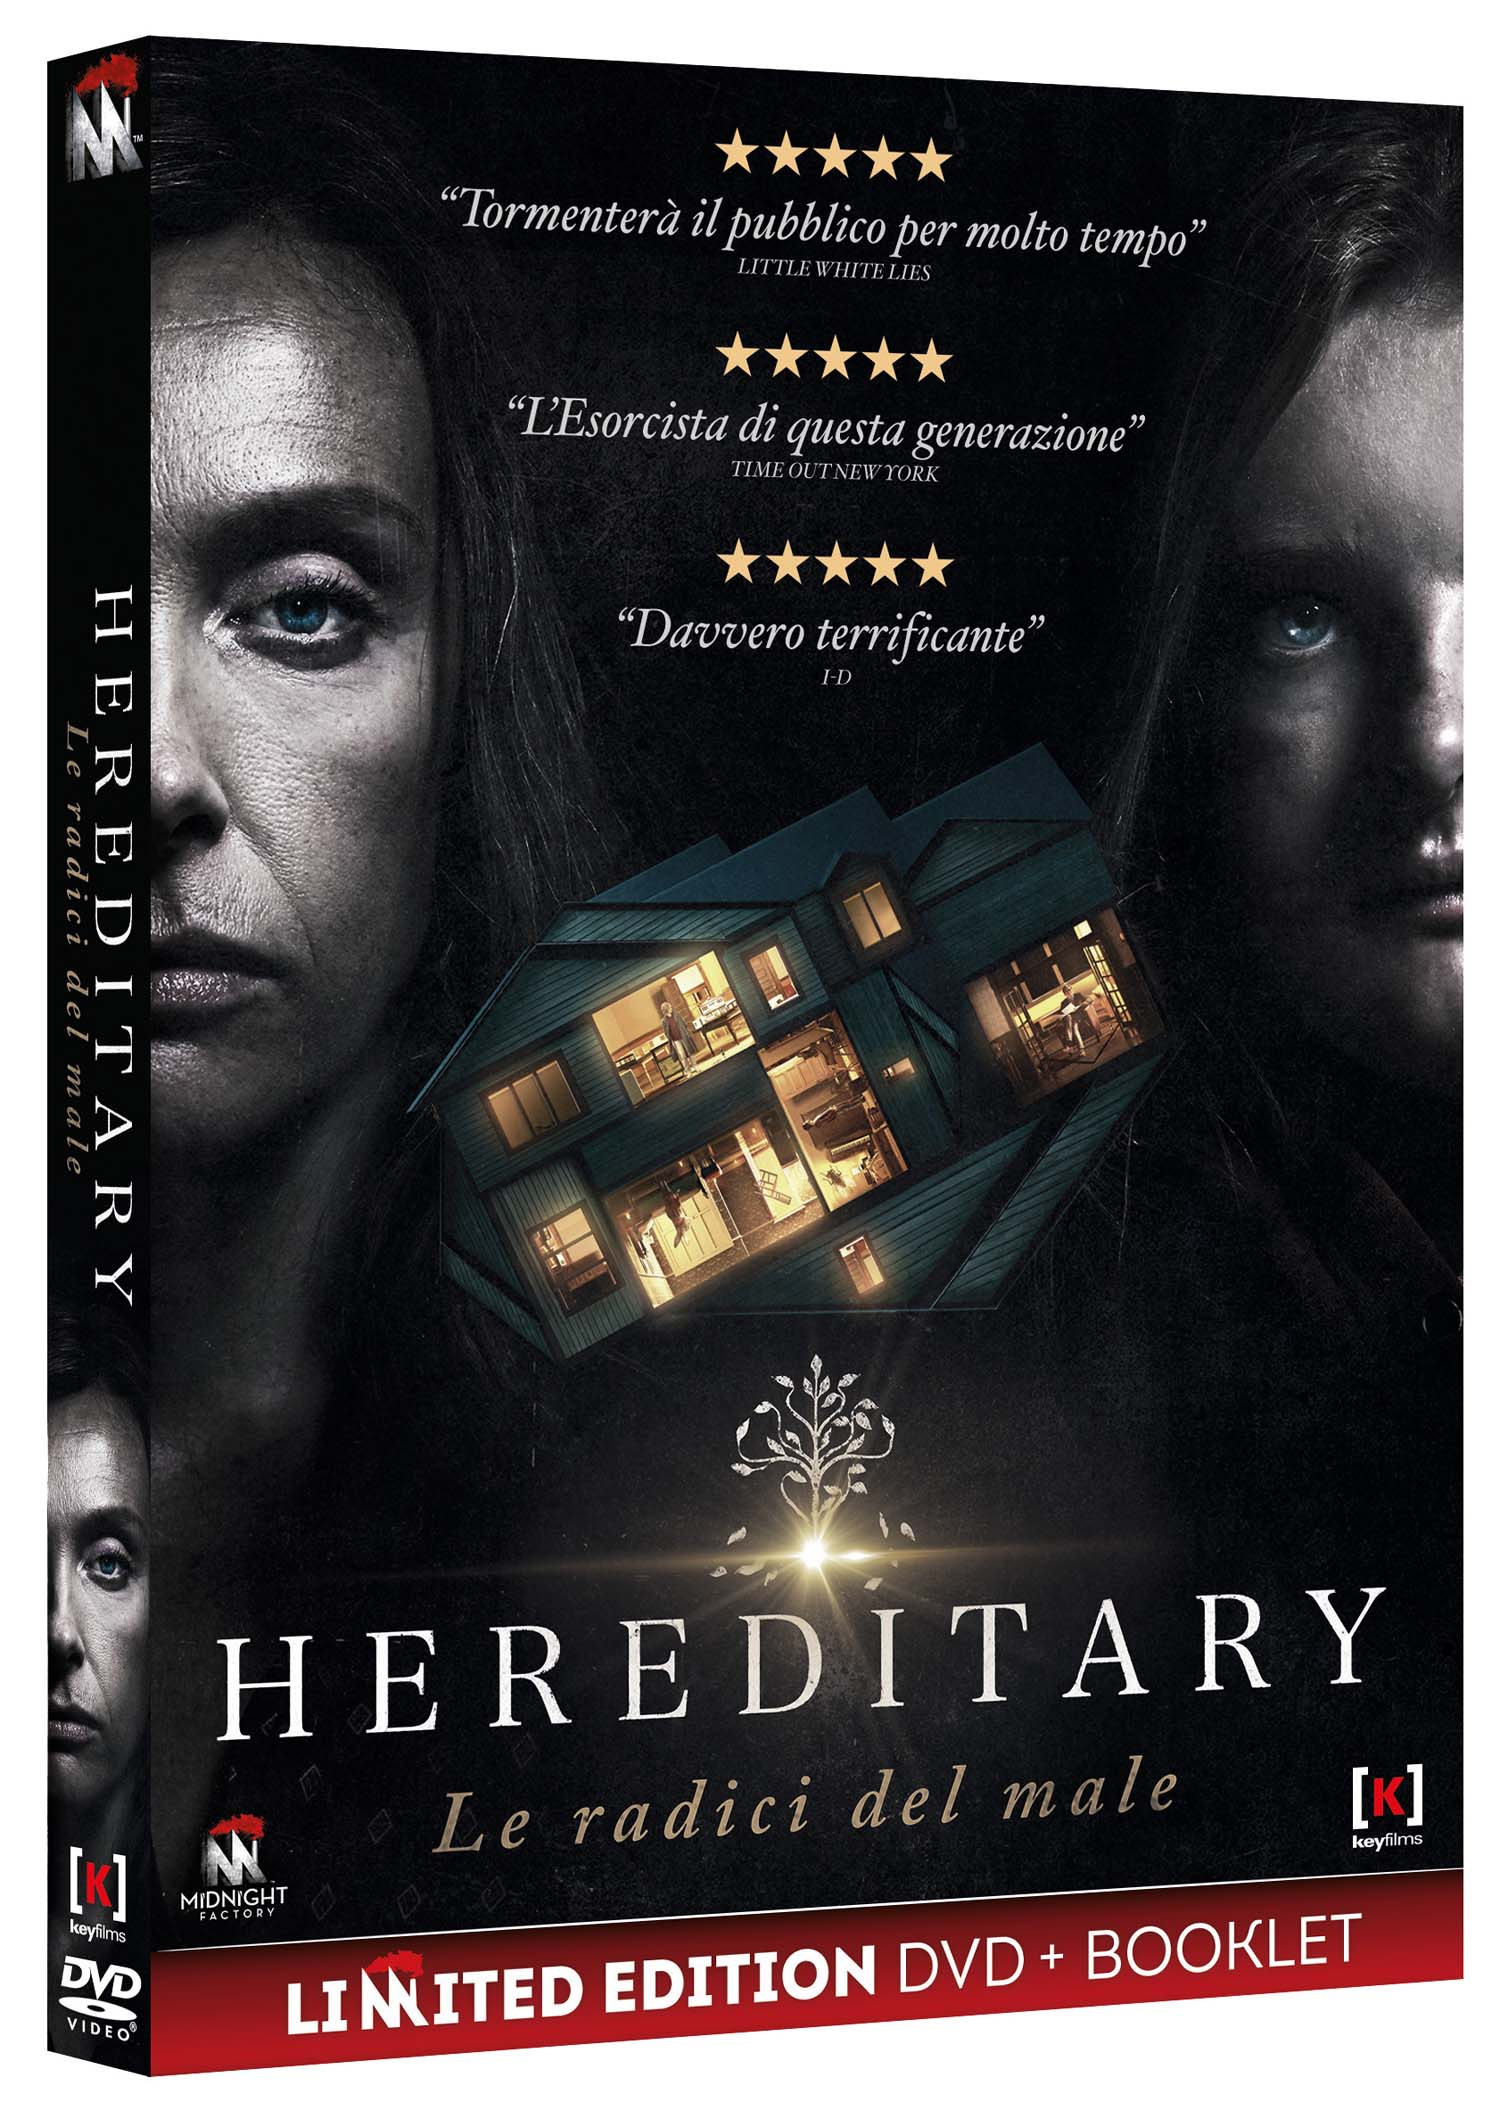 HEREDITARY - LE RADICI DEL MALE (DVD)